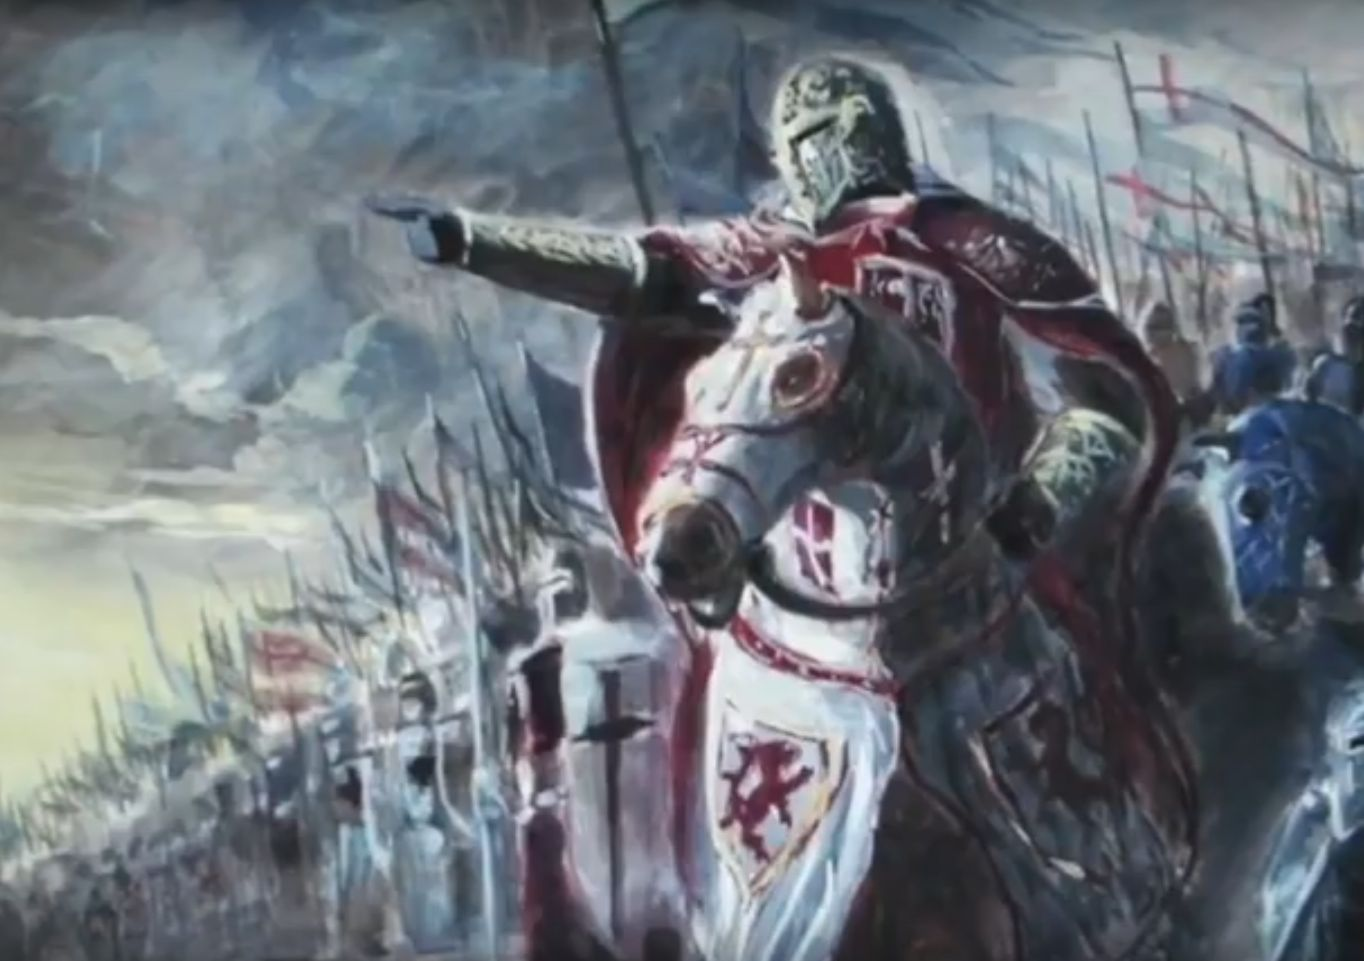 A new 'Masonic Education' episode - The Knights Templar